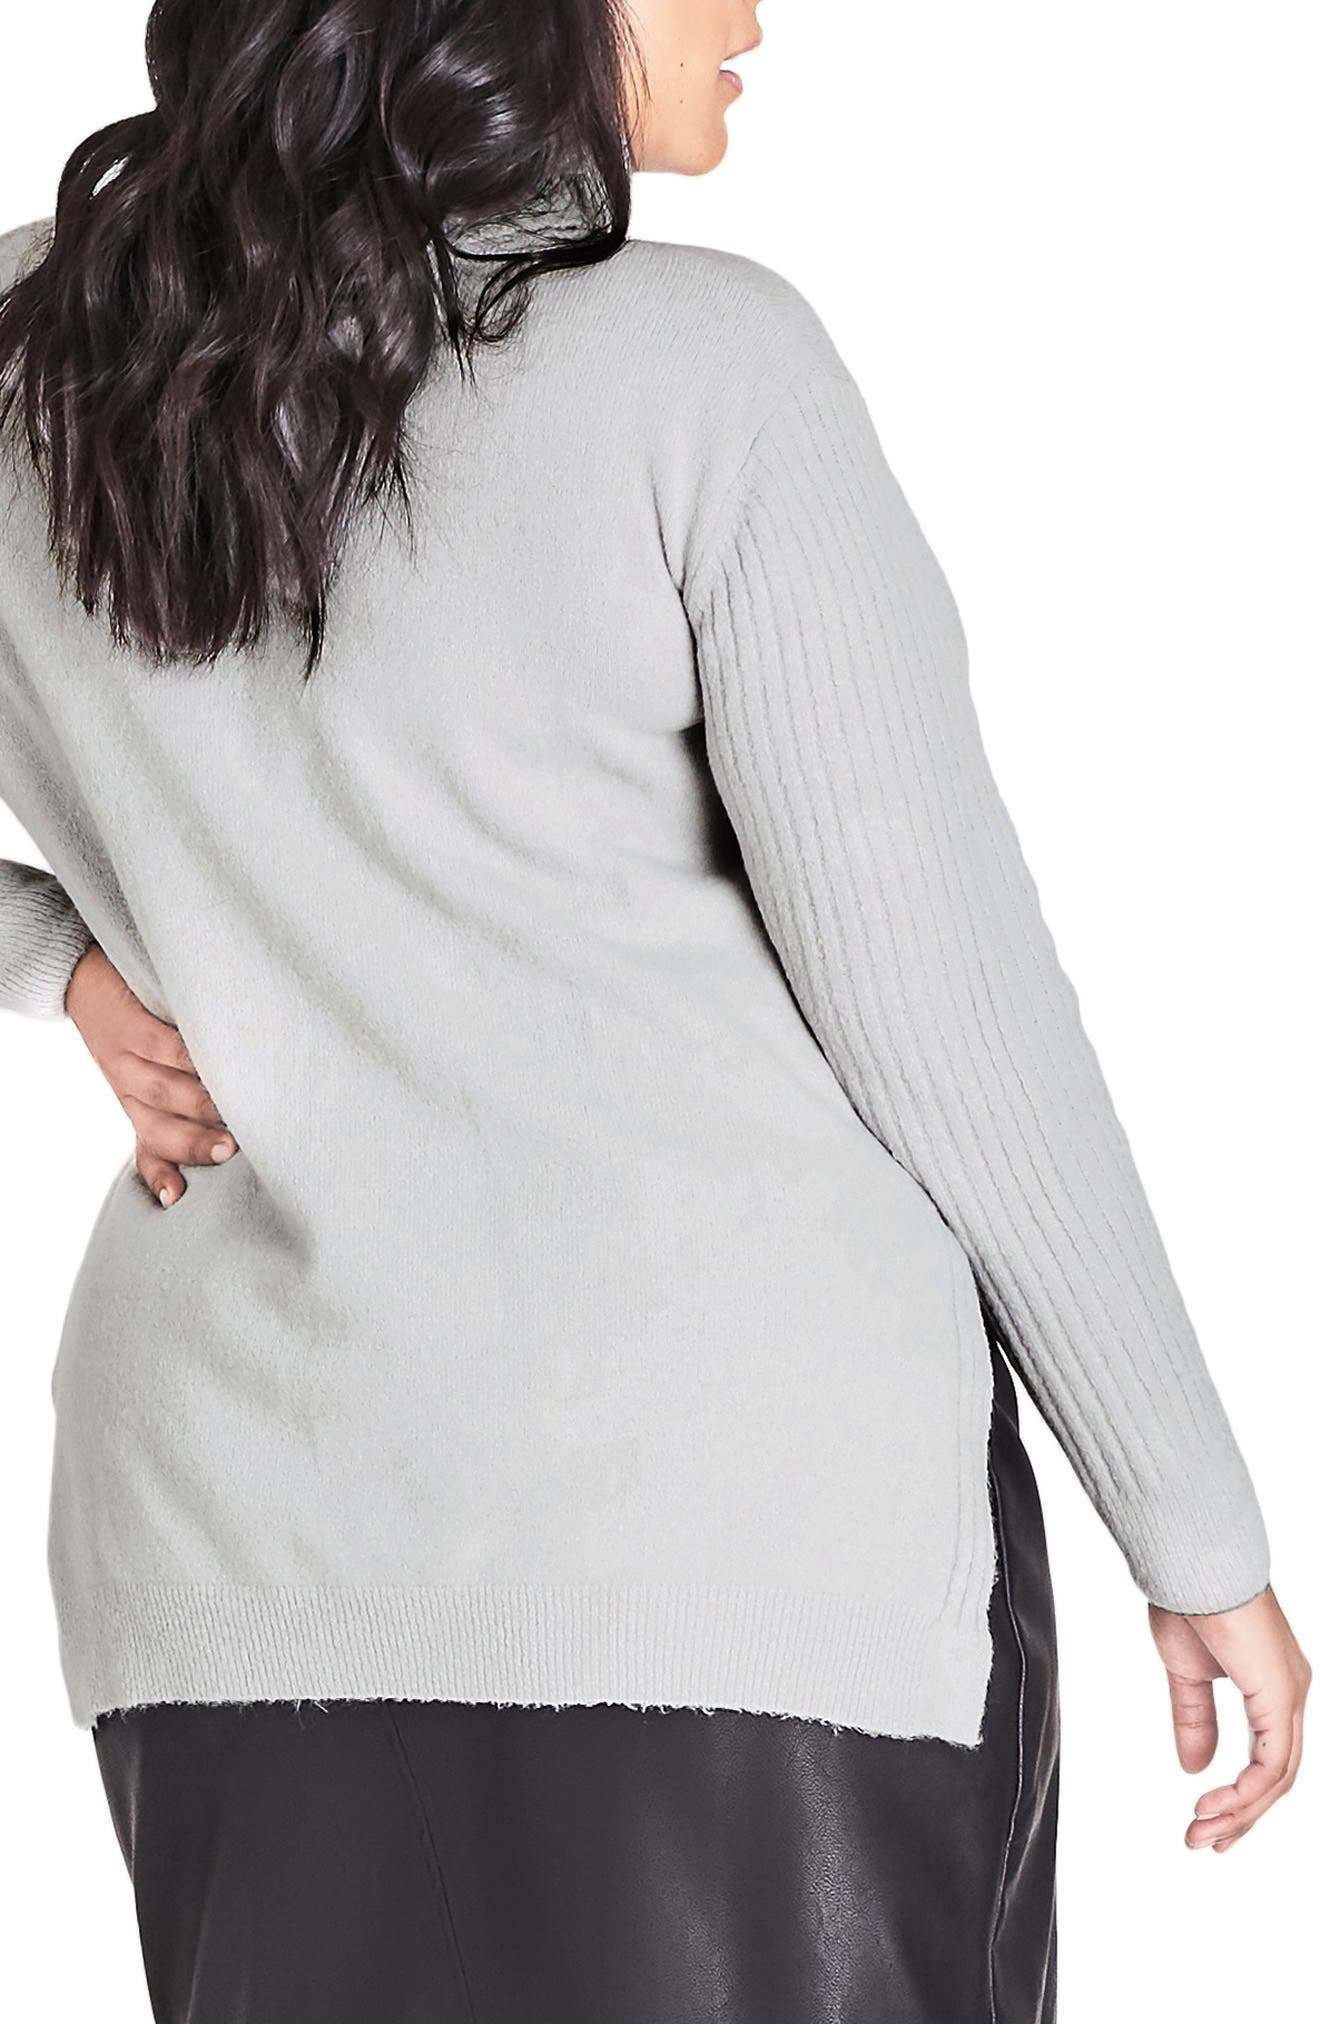 CITY CHIC,                             Turtleneck Sweater,                             Alternate thumbnail 2, color,                             SILVER MARLE